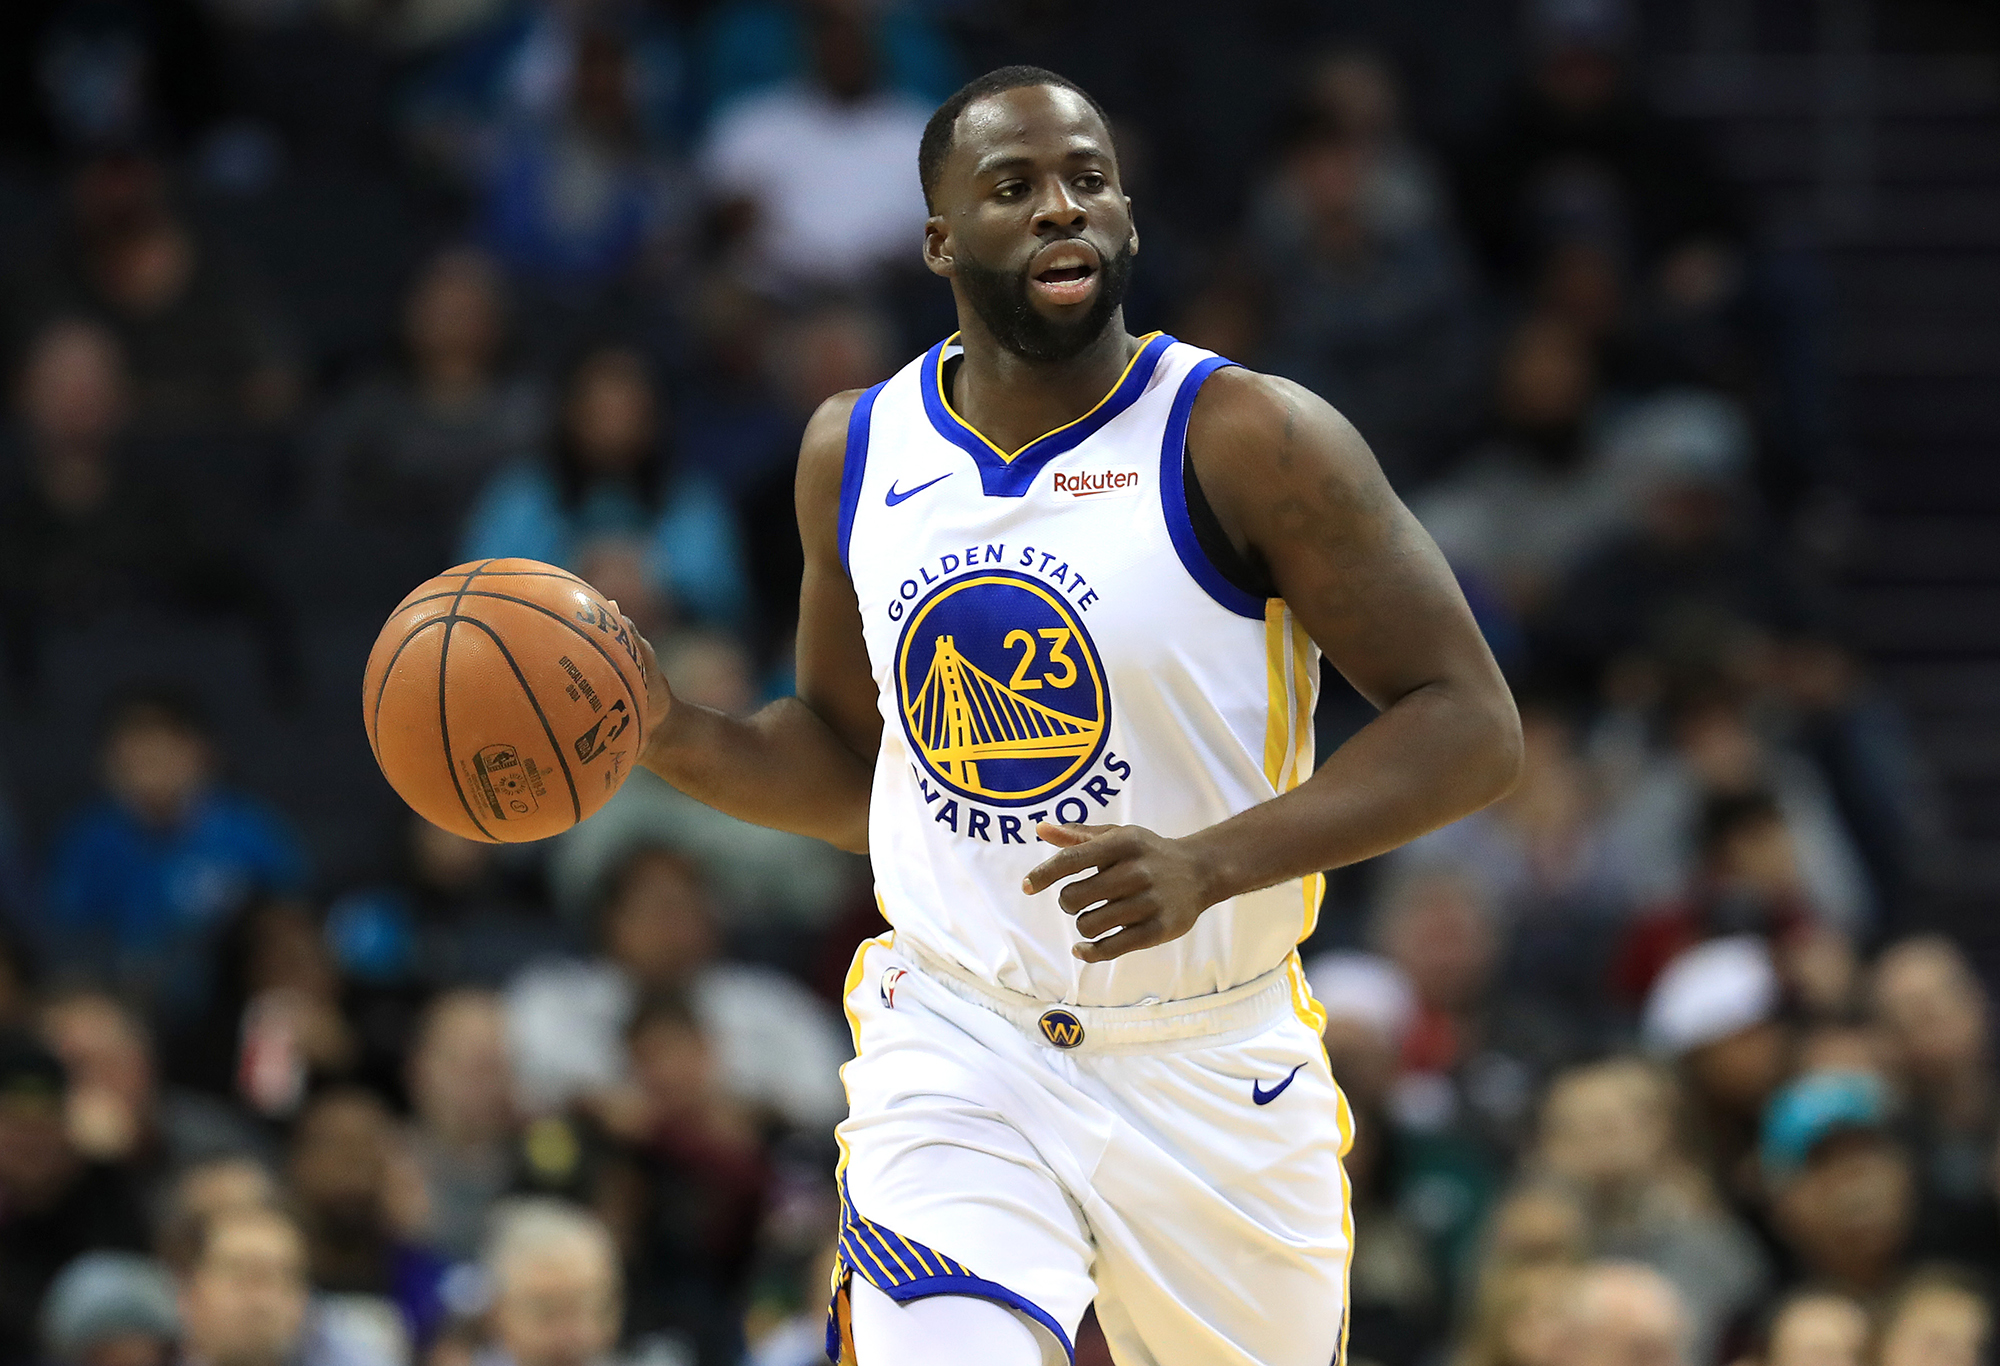 Draymond Green of the Golden State Warriors brings the ball up the court against the Charlotte Hornets during their game at Spectrum Center on December 4, 2019 in Charlotte, North Carolina.